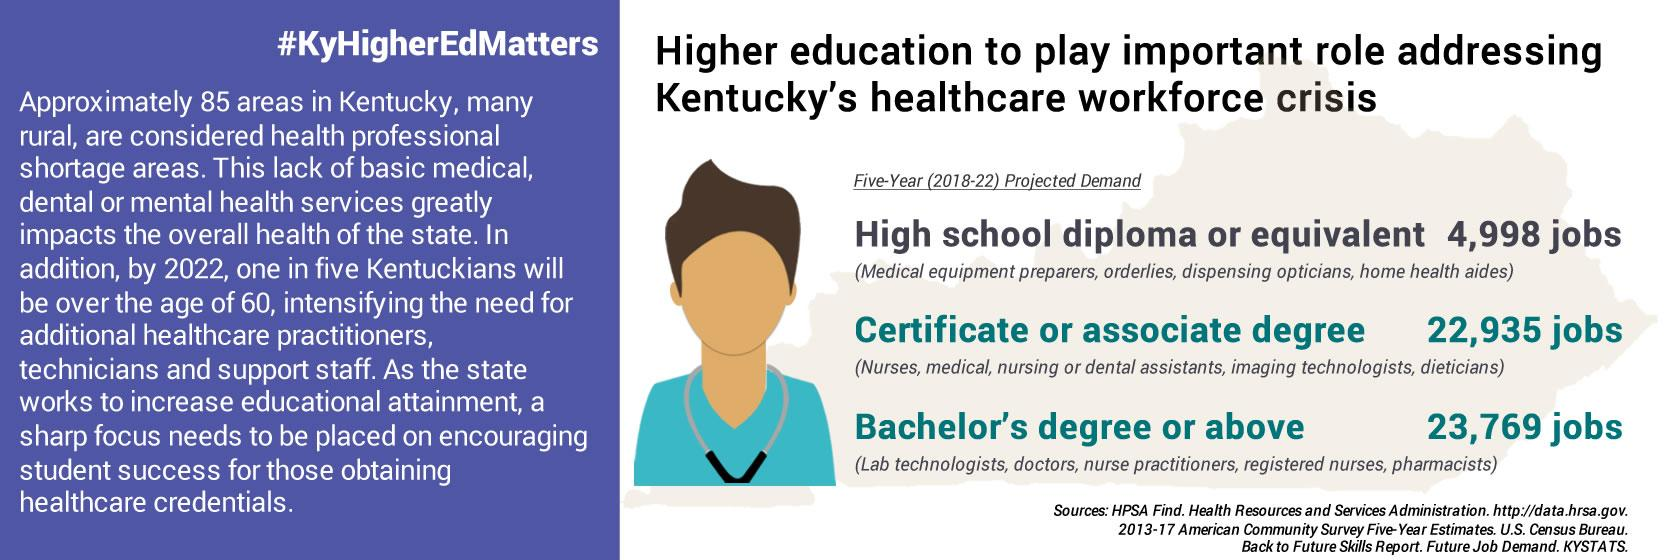 Higher education to play critical role in addressing Kentucky's healthcare workforce crisis